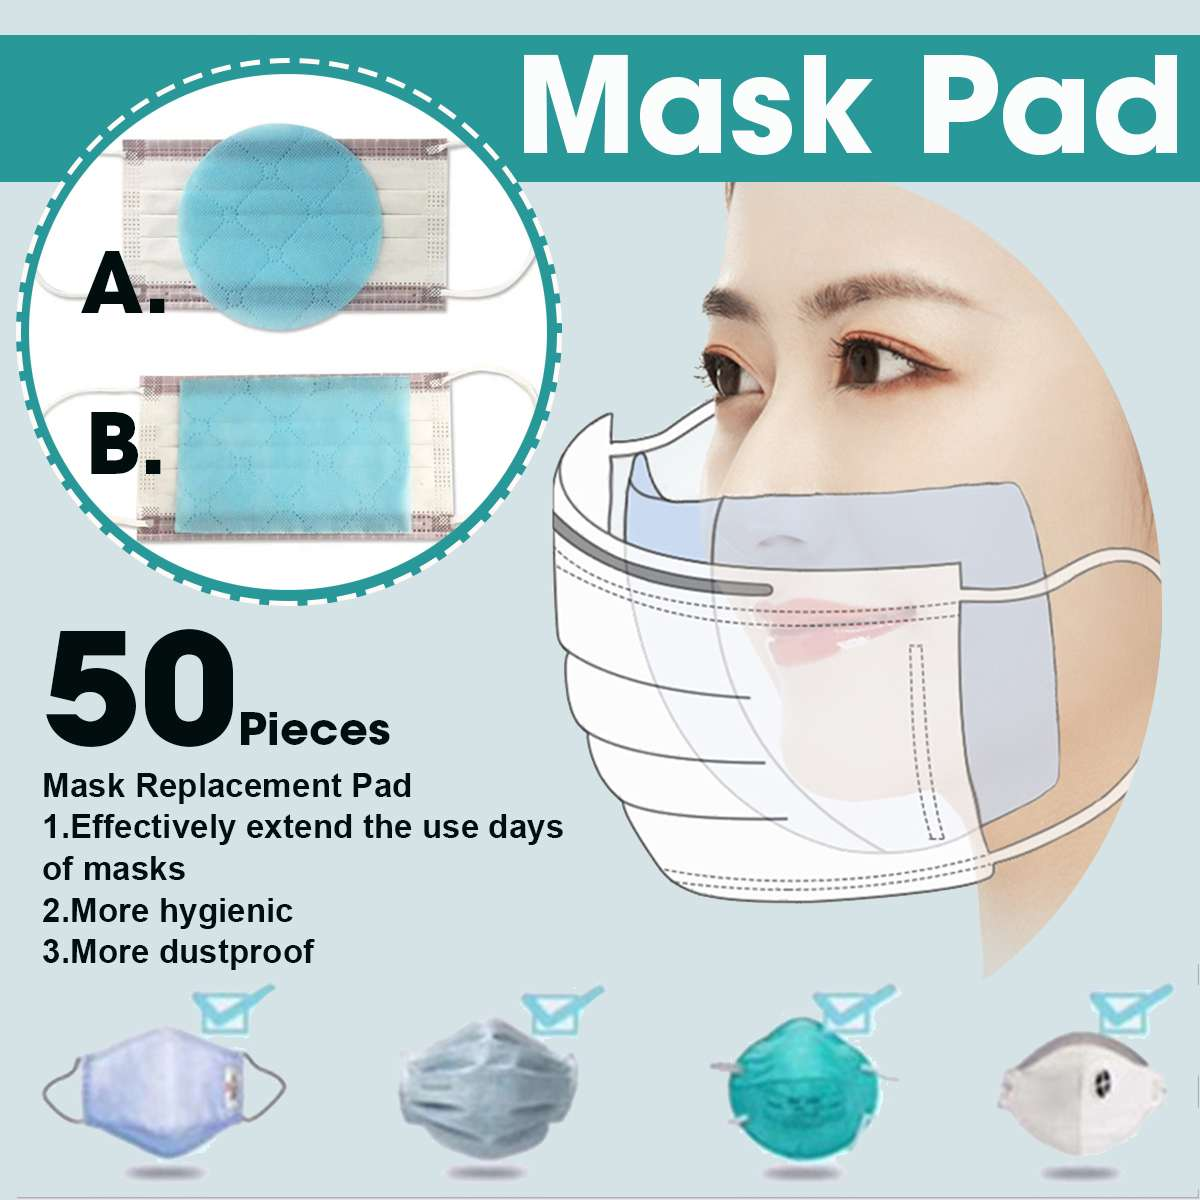 50Pcs Disposable 3 Layer Masks Gasket Anti PM2.5 Anti Influenza Breathing Safety Replacement Pad For kf94 N95 KN95 All Face Mask 1